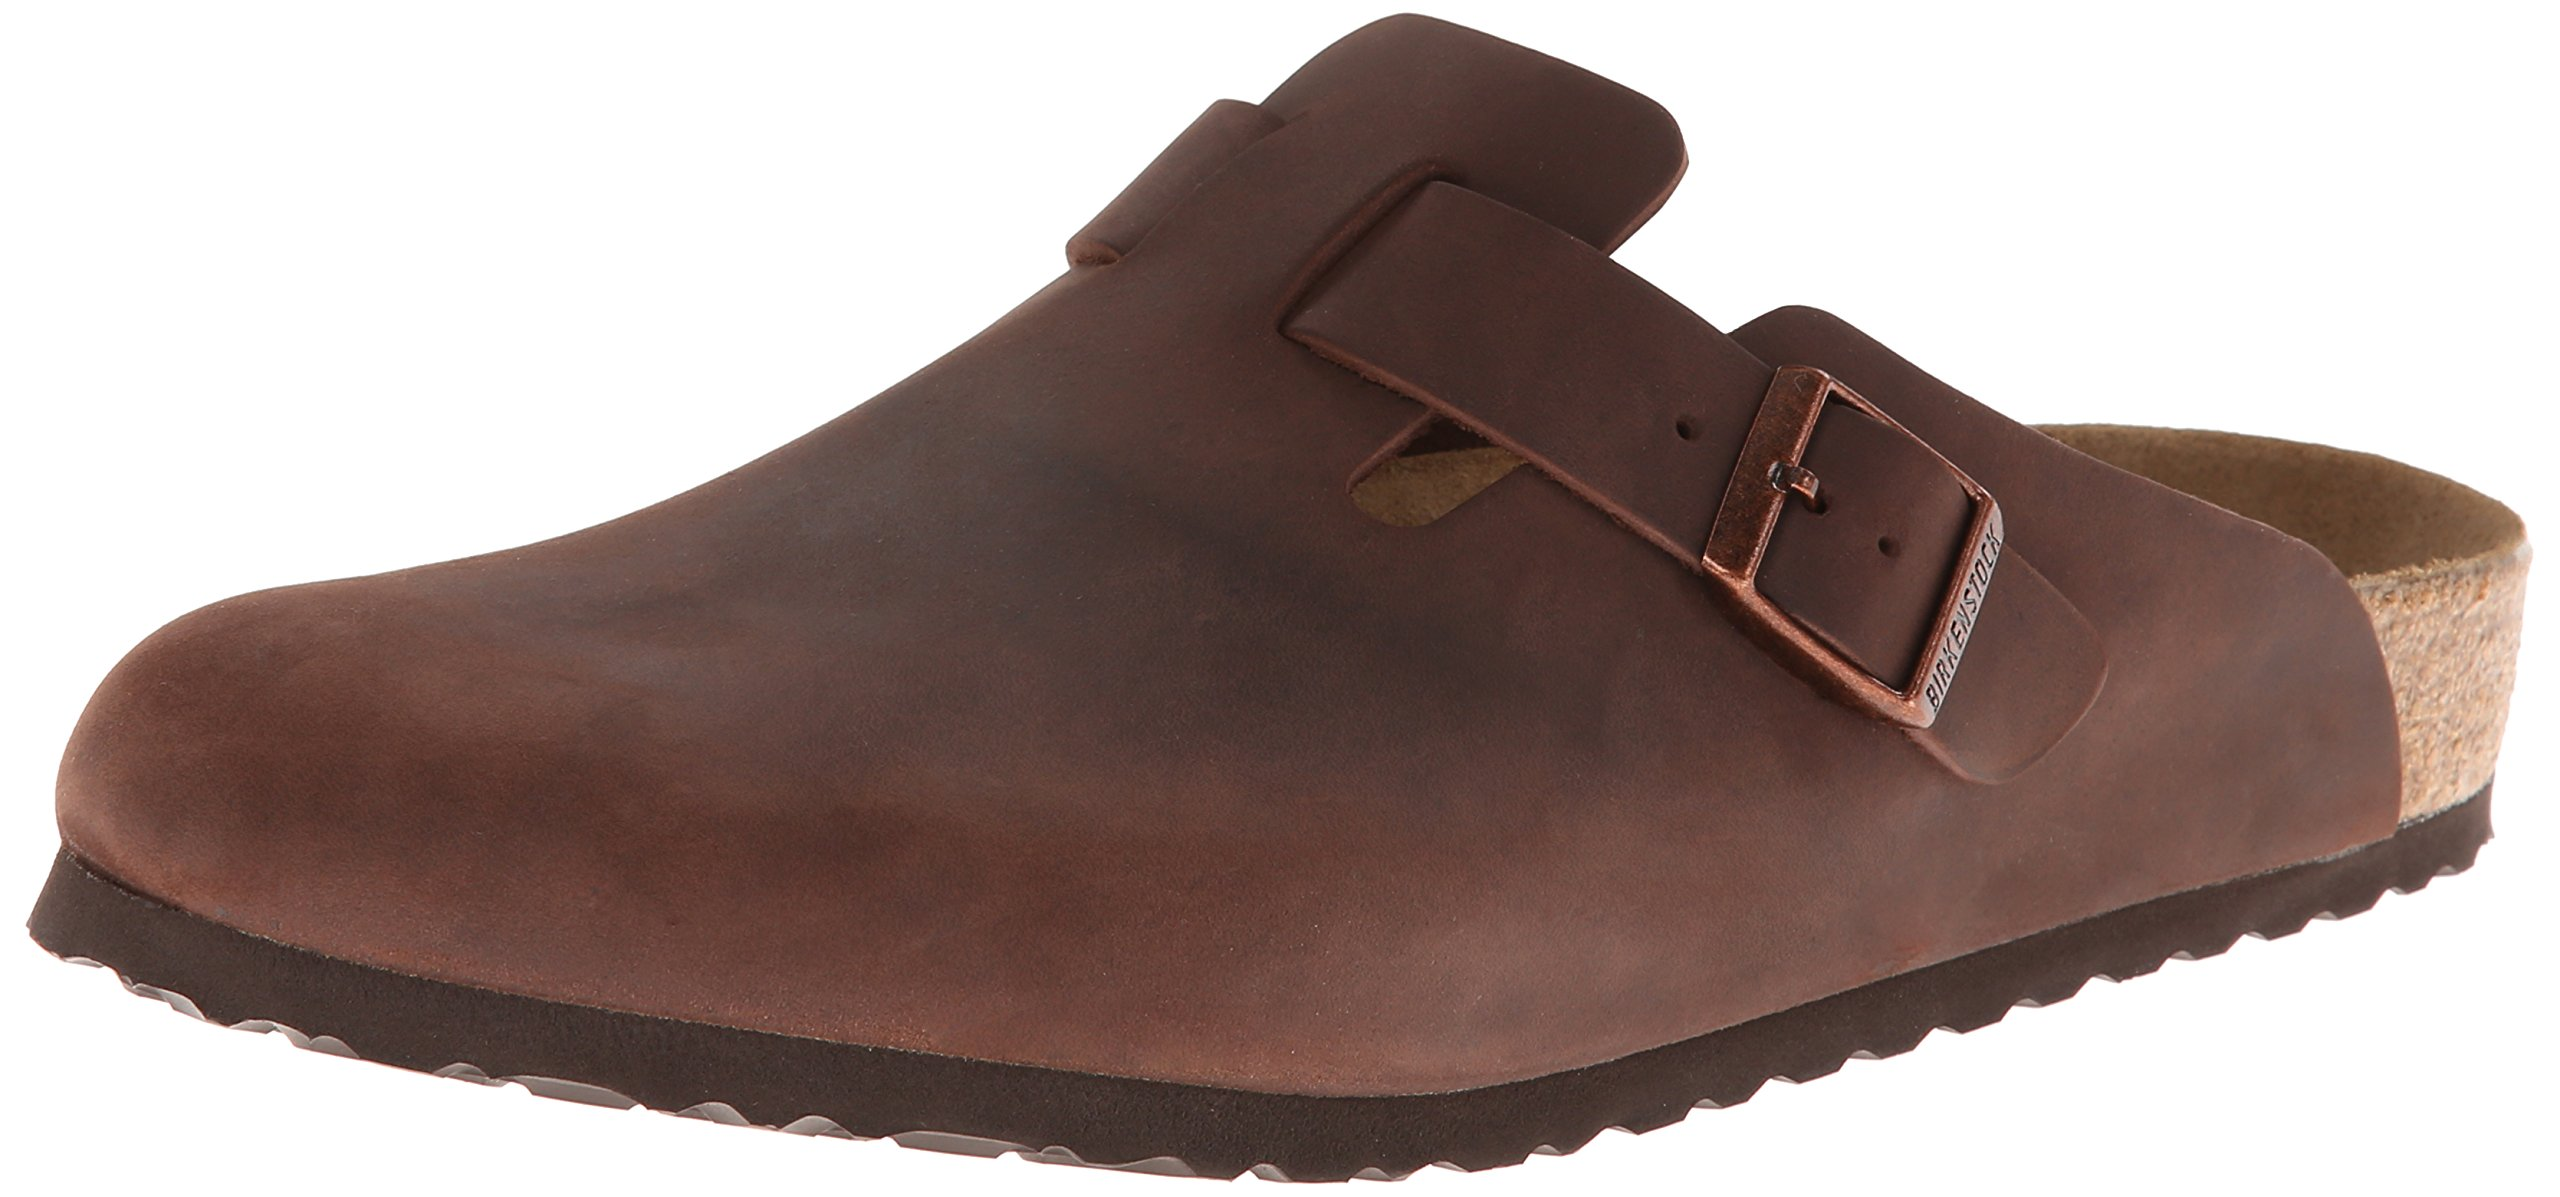 Birkenstock Unisex Boston Soft Footbed, Habana Oiled Leather, 43 M EU